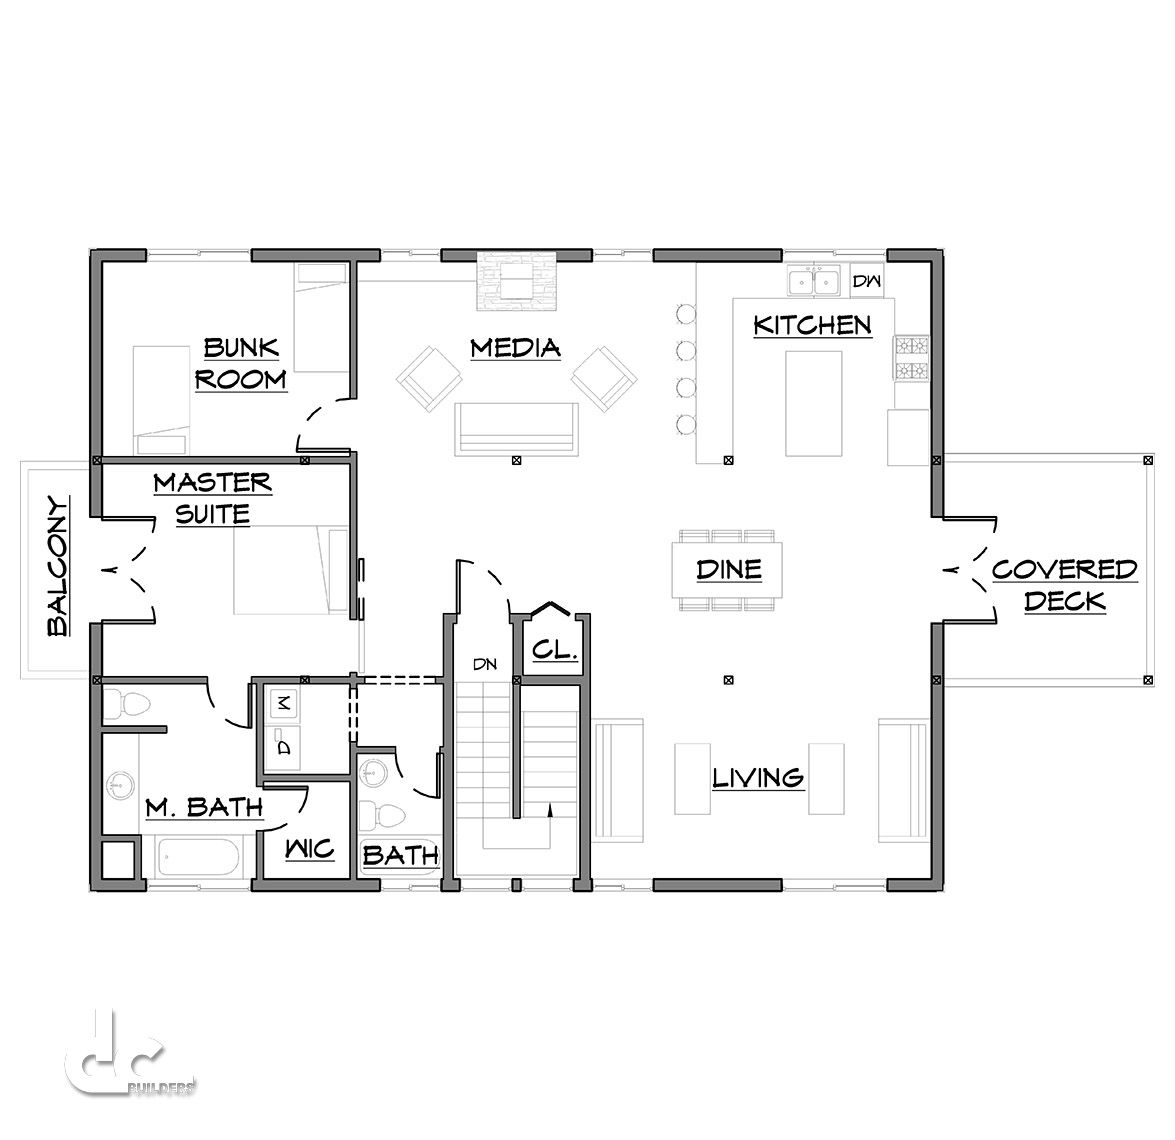 48 ft barn home floor plans dc building home and for Carport apartment plans